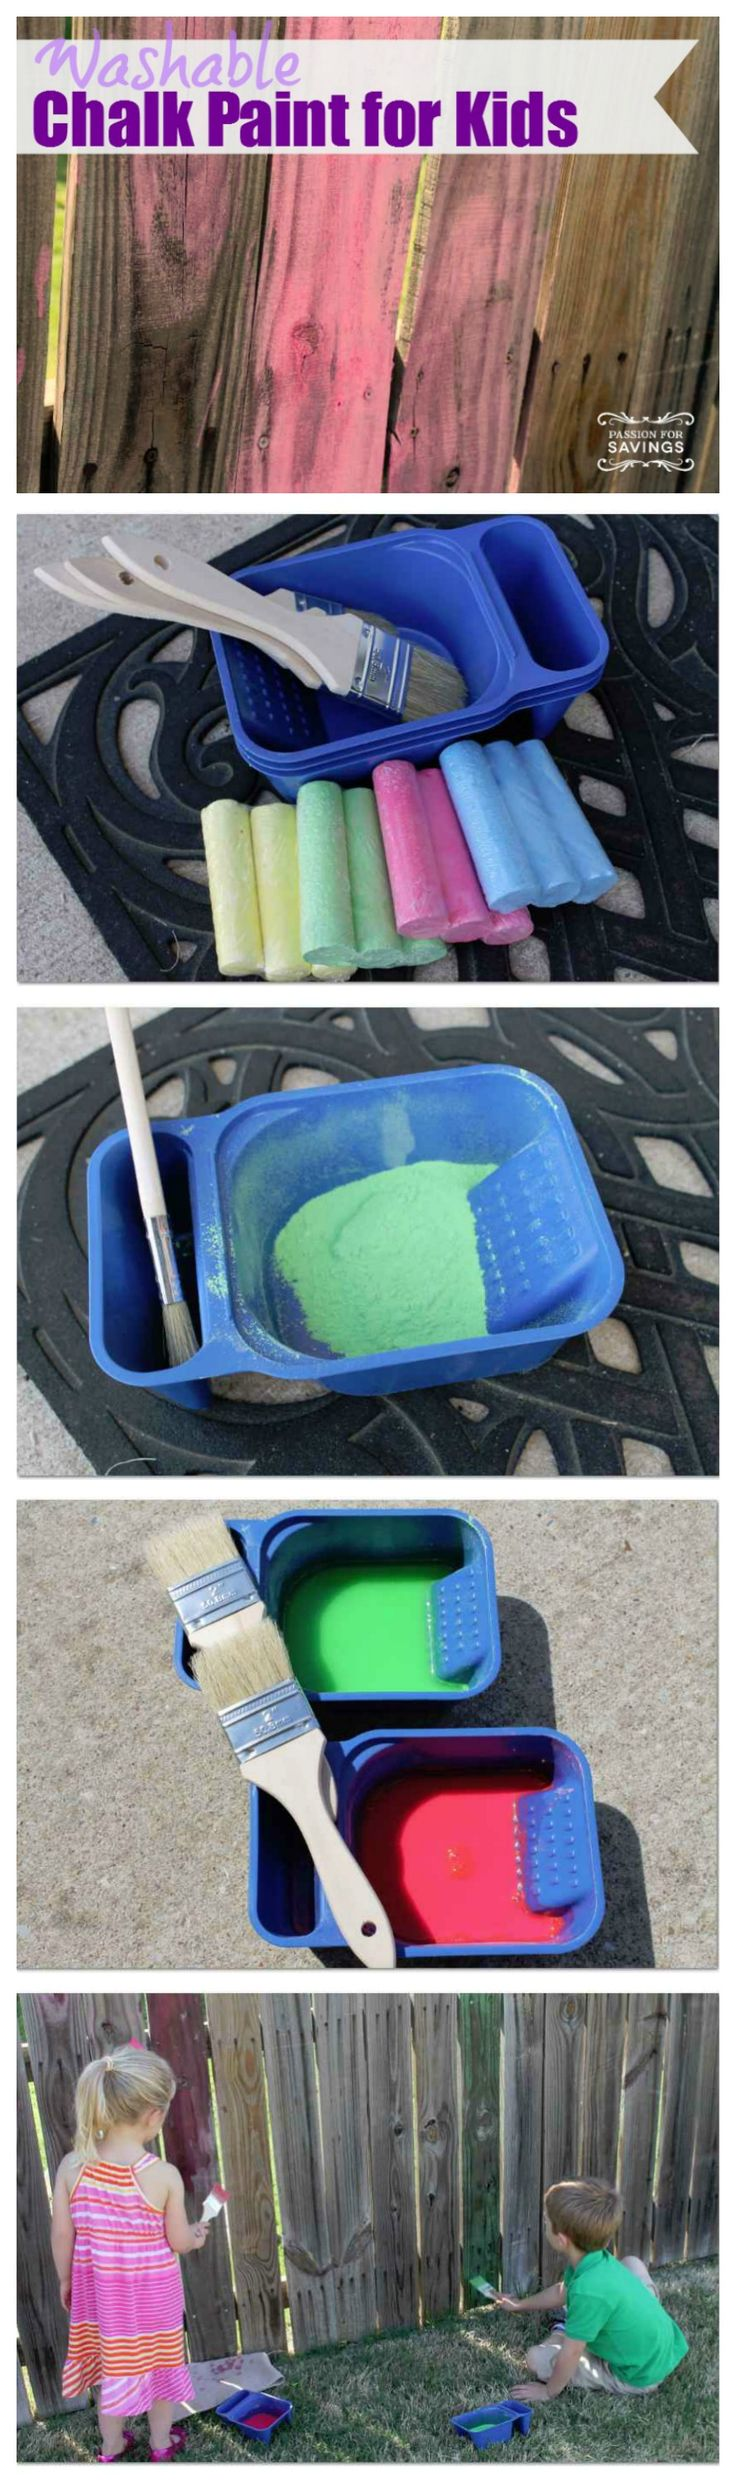 Washable chalk paint. Kids could make a masterpiece with our fence. Lol. Not sure how long Kane would stay interested...